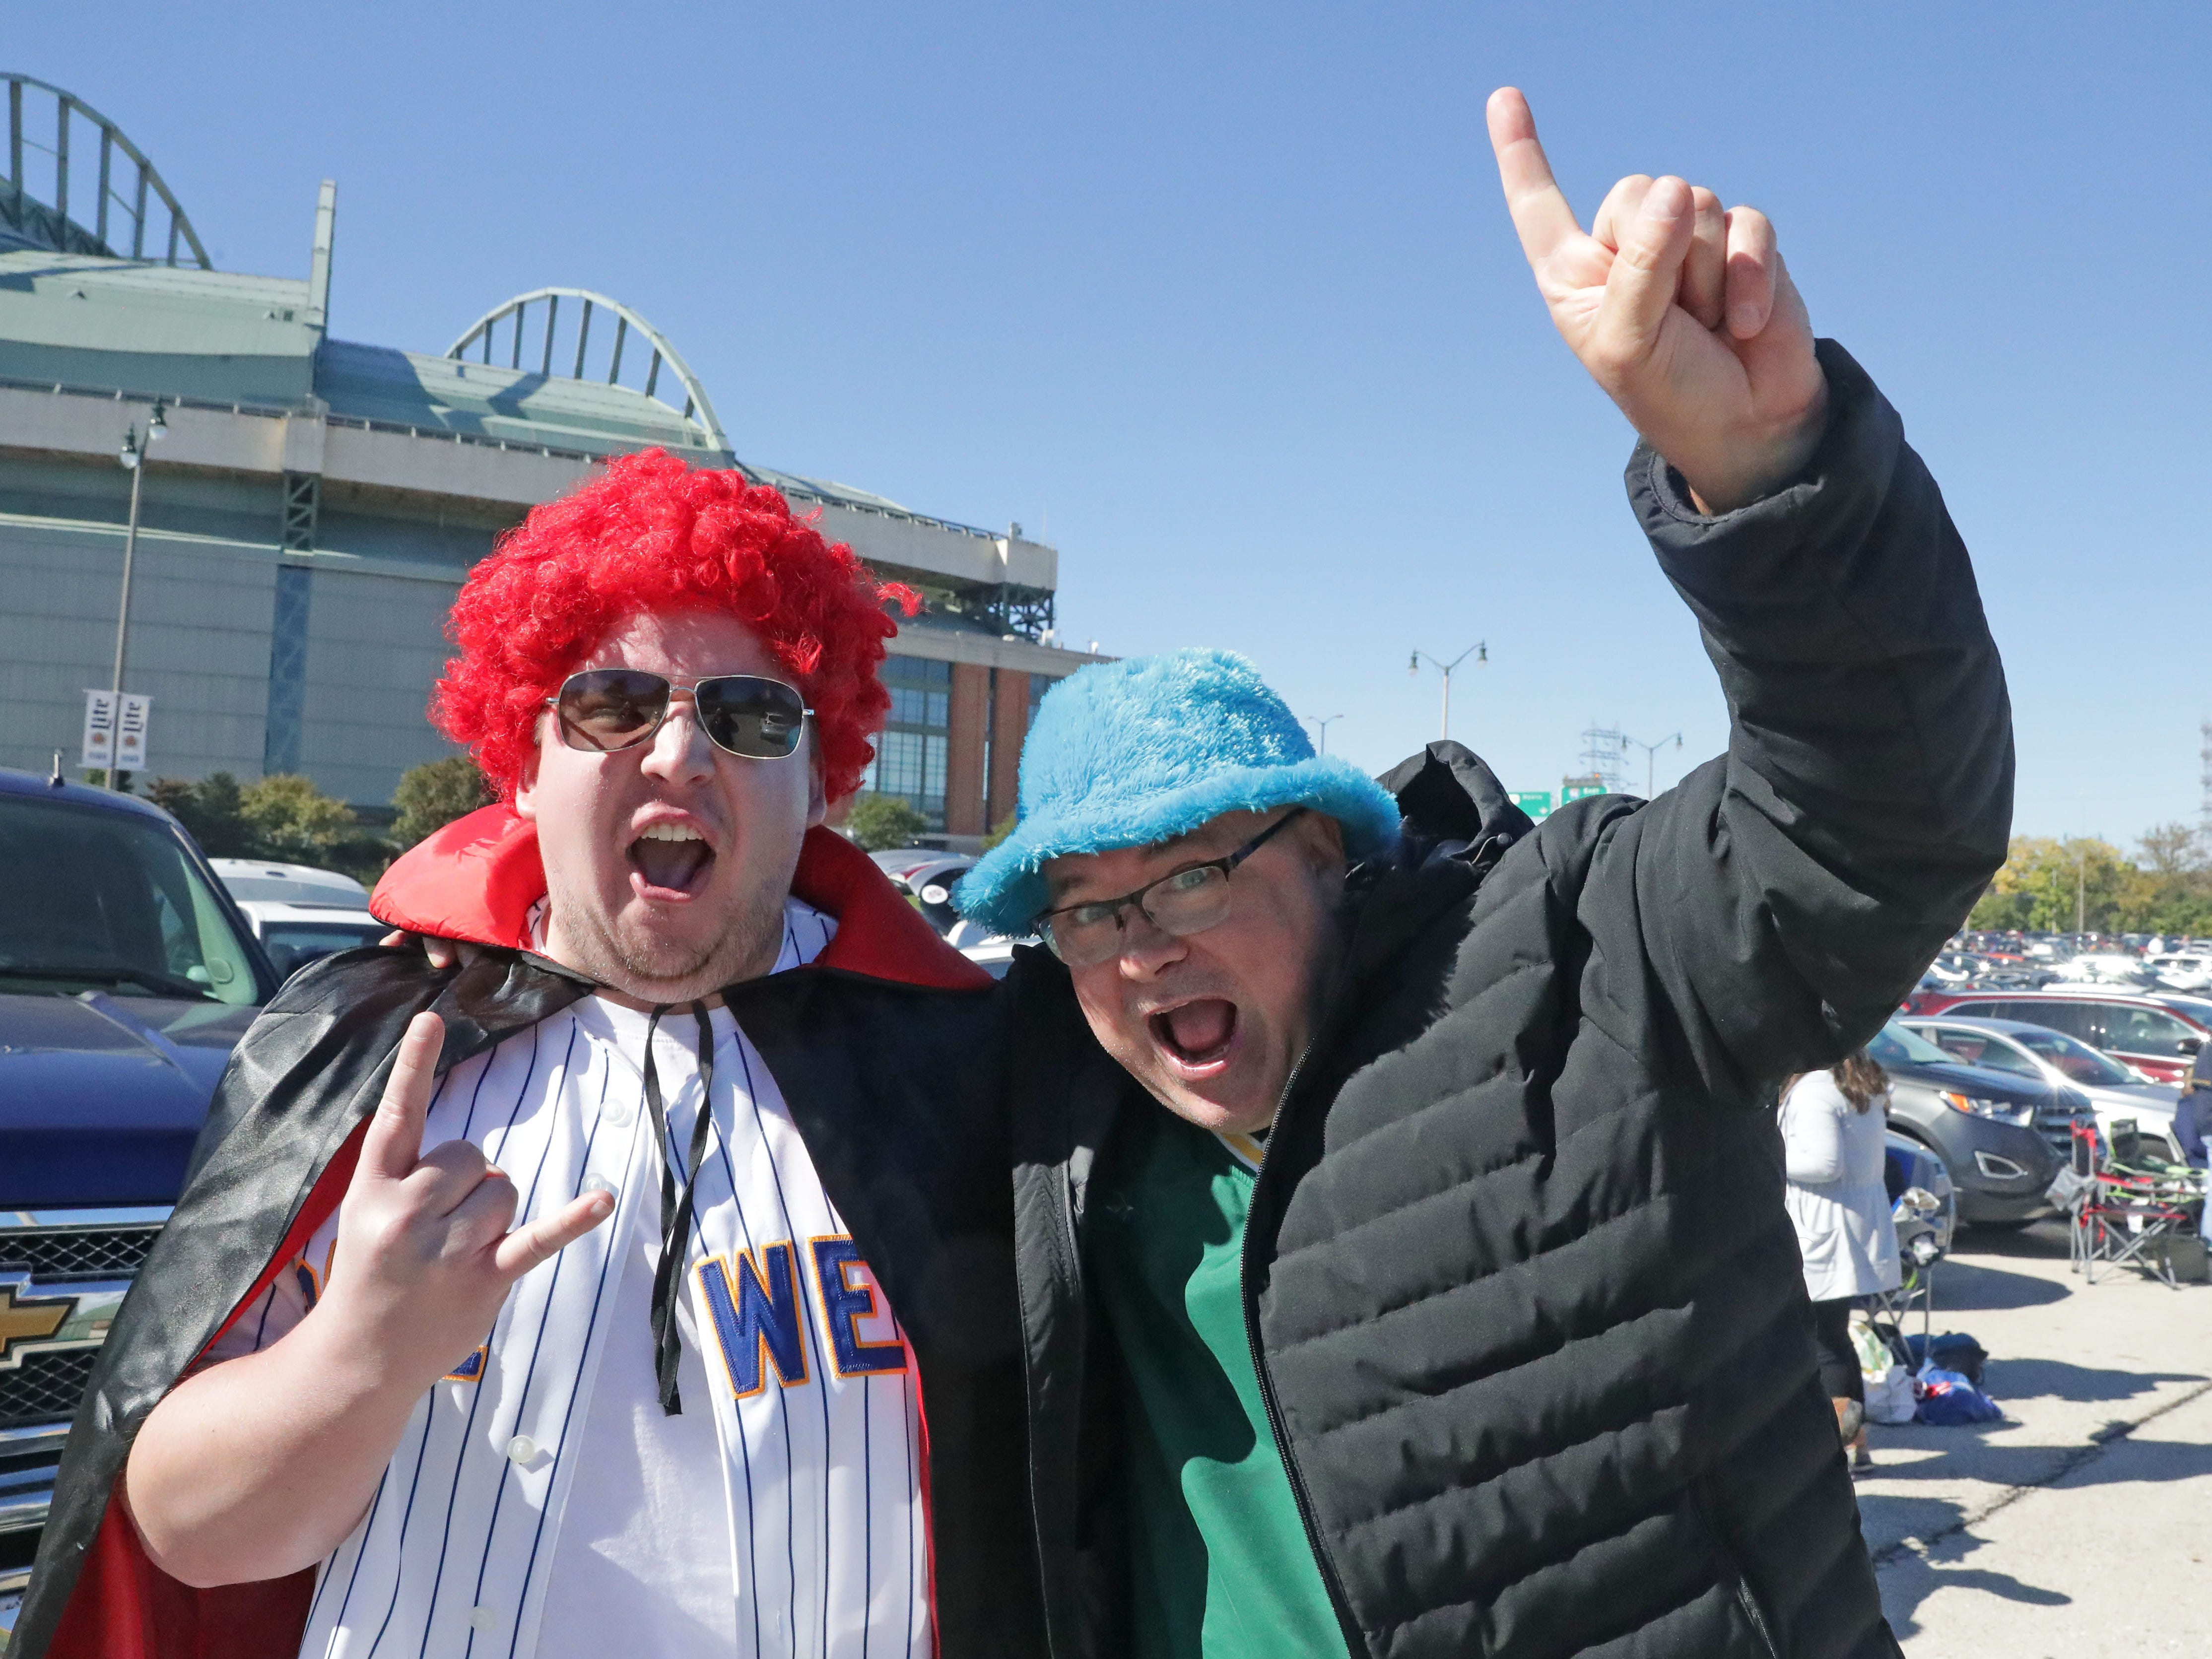 Brian Wilson (left) of Wales and Nick Laskowski of Milwaukee don a red wig and flashy blue hat while tailgating before the Milwaukee Brewers National League Divisional Series game against the Colorado Rockies.